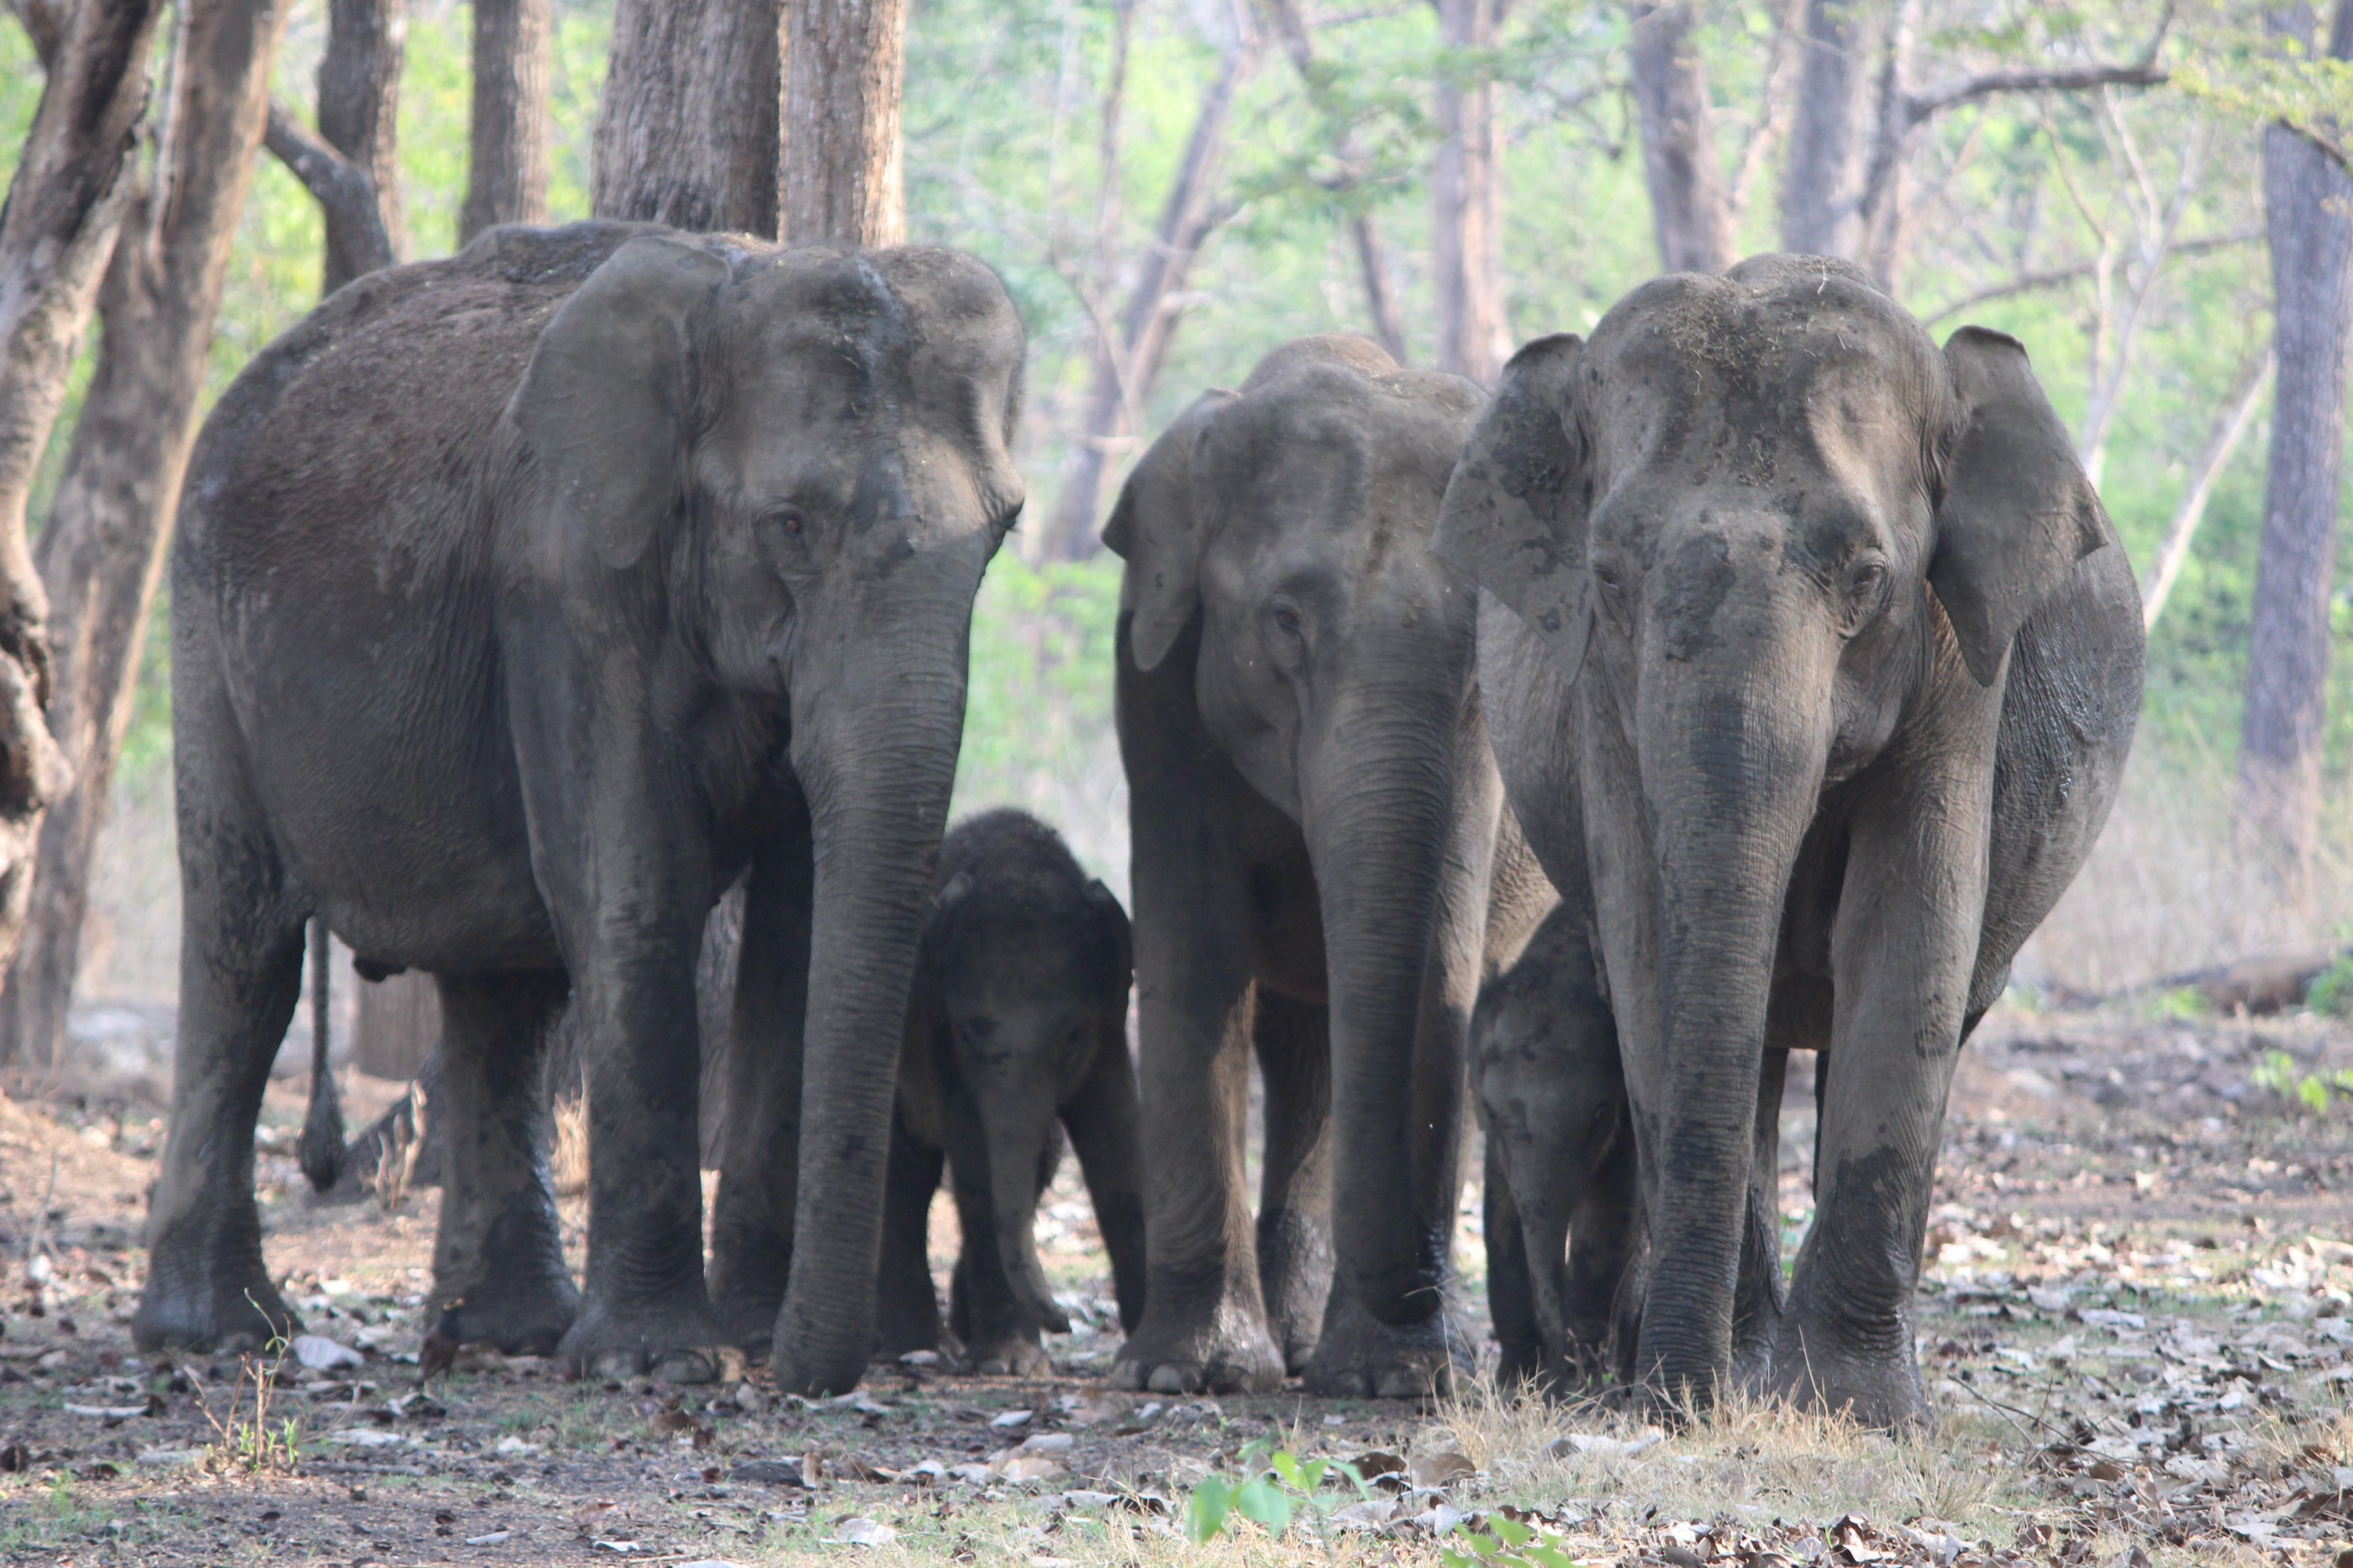 A herd of elephants with the young and old in the middle.